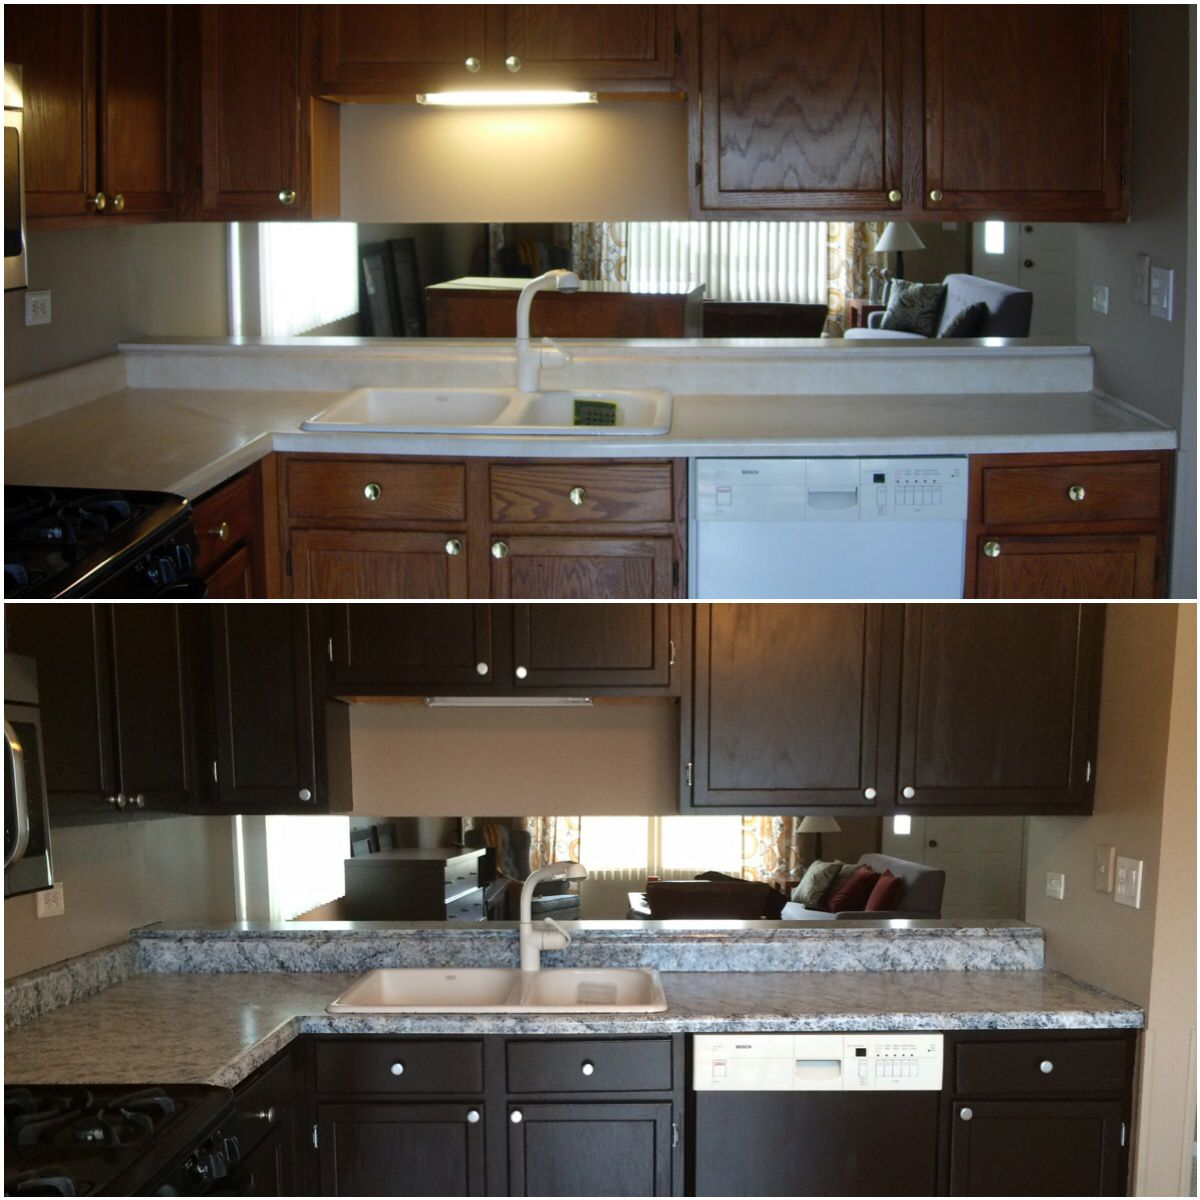 Amazing Countertops After Using Giani Granite White Diamond Kit With Some Black Onyx And Chocolate Brown And Sherwin W Kitchen Renovation Home Kitchen Cabinets